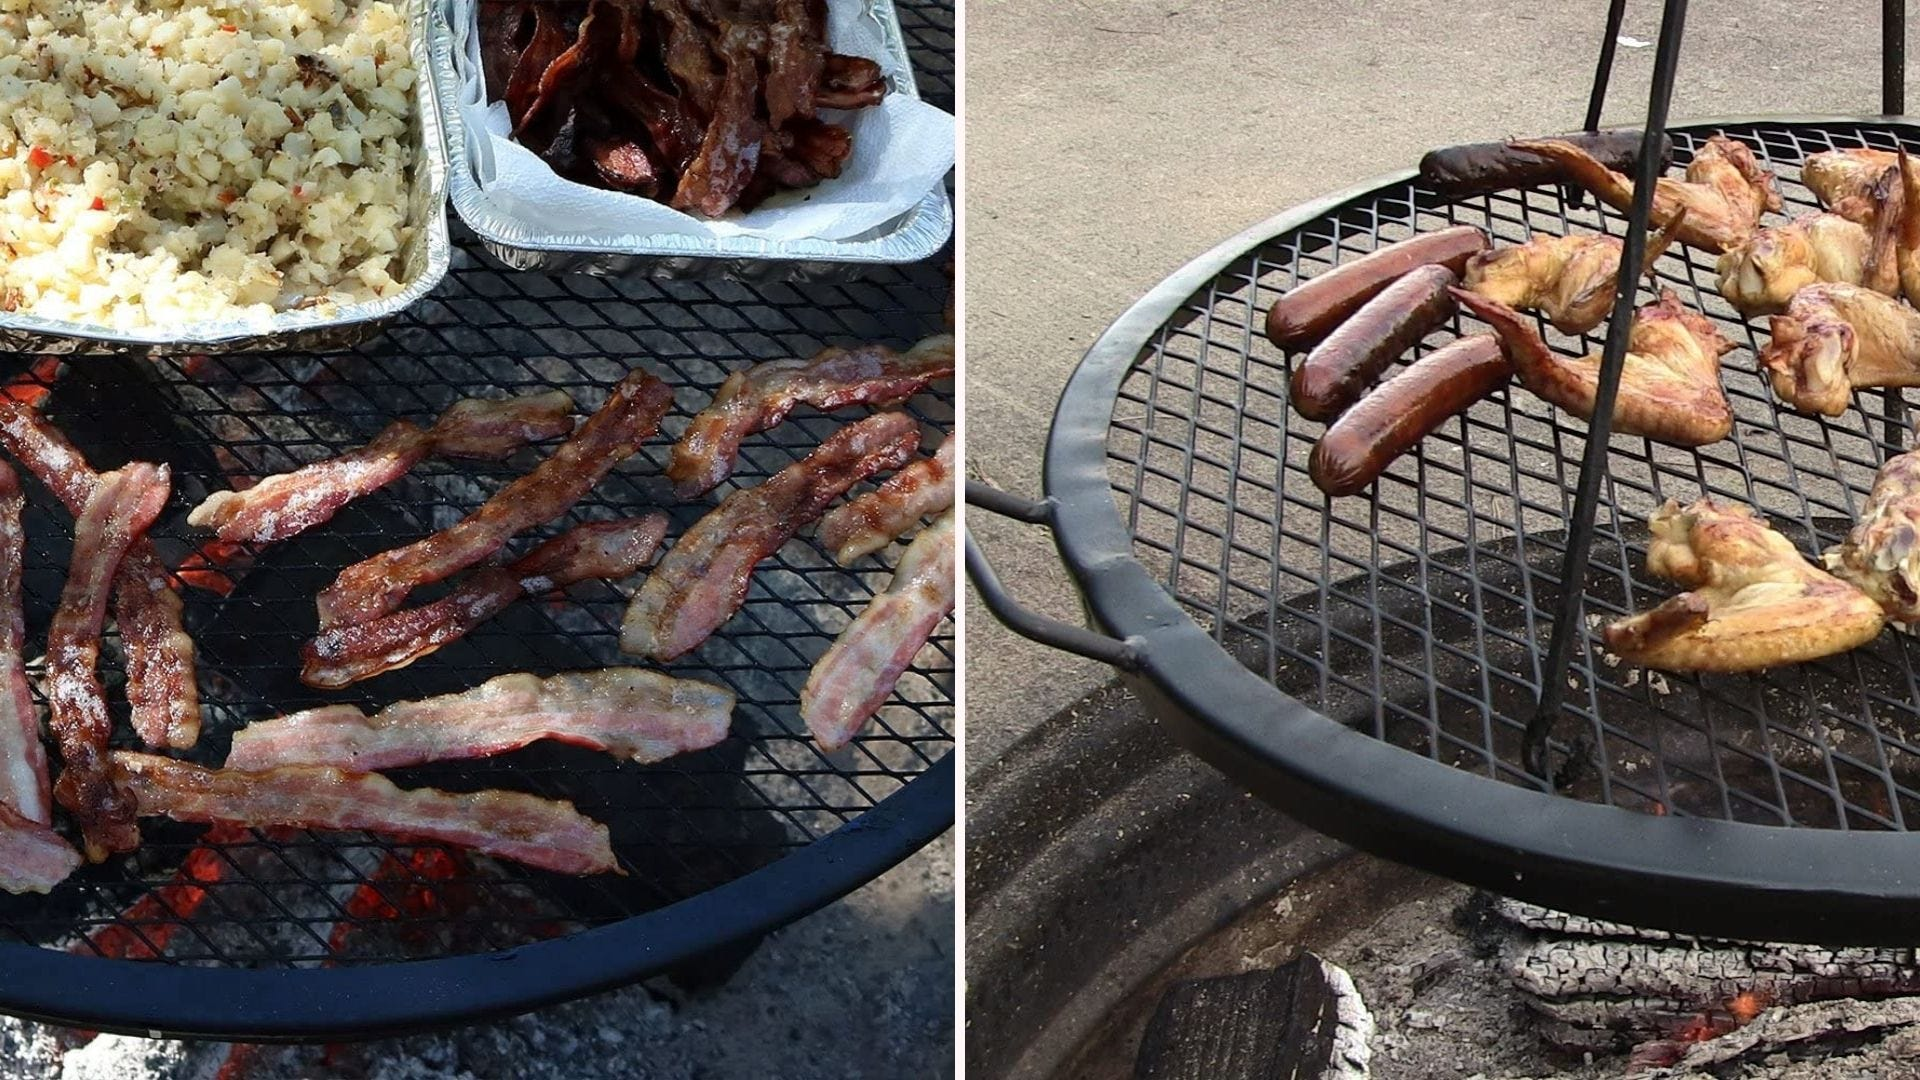 Two side by side images: the left image is of bacon, and home fries cooking on a Sunny Daze grill grate. The right image is of chicken wings and hot dogs cooking on a SunnyDaze grate, which is attached to a grilling tripod.